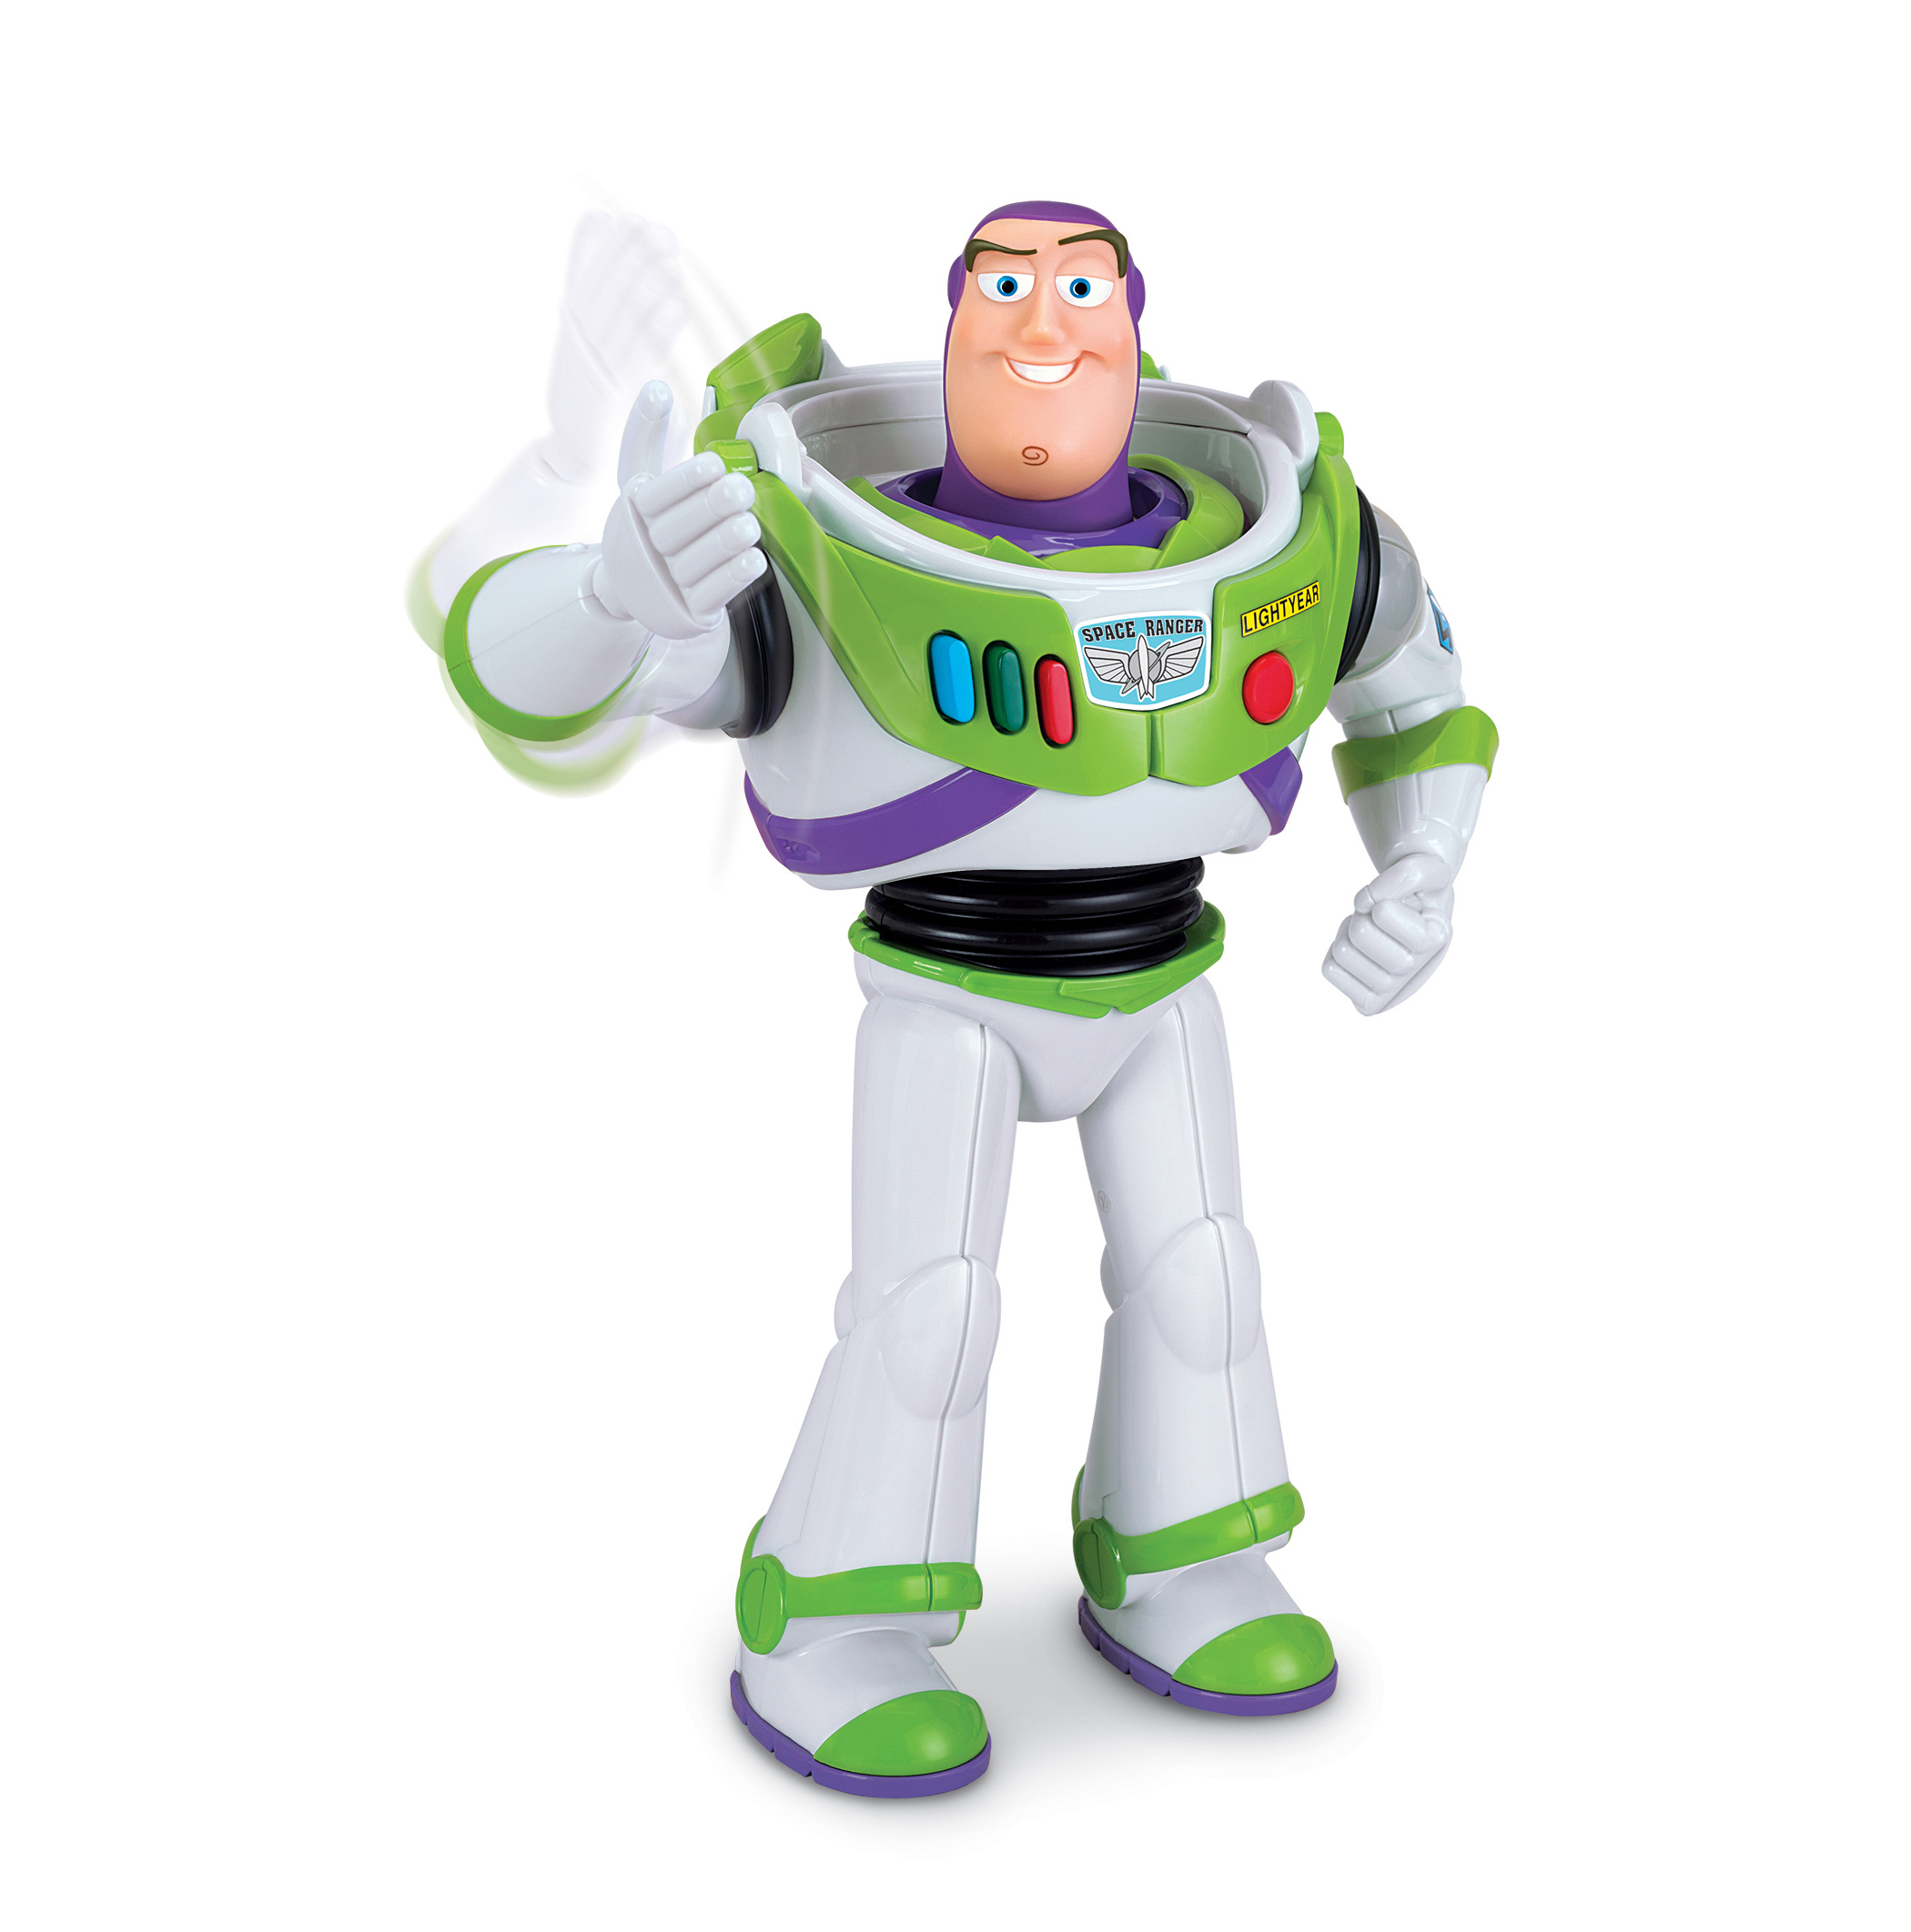 Toy Story Buzz Lightyear Karate Chop Action - Walmart.com 3bd65b4515a